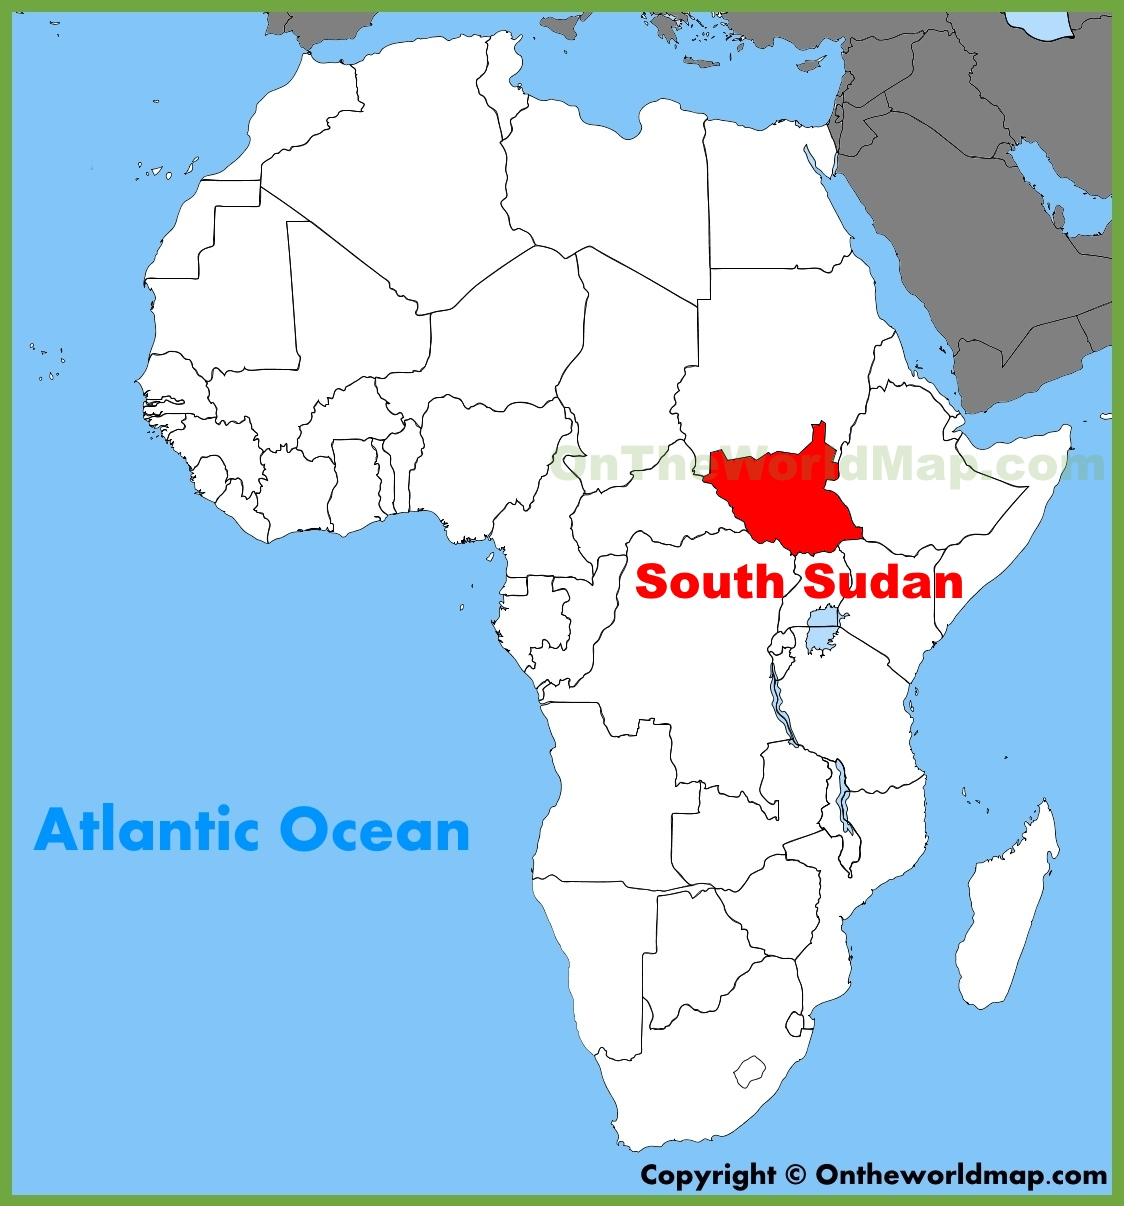 South Sudan Map South Sudan location on the Africa map South Sudan Map